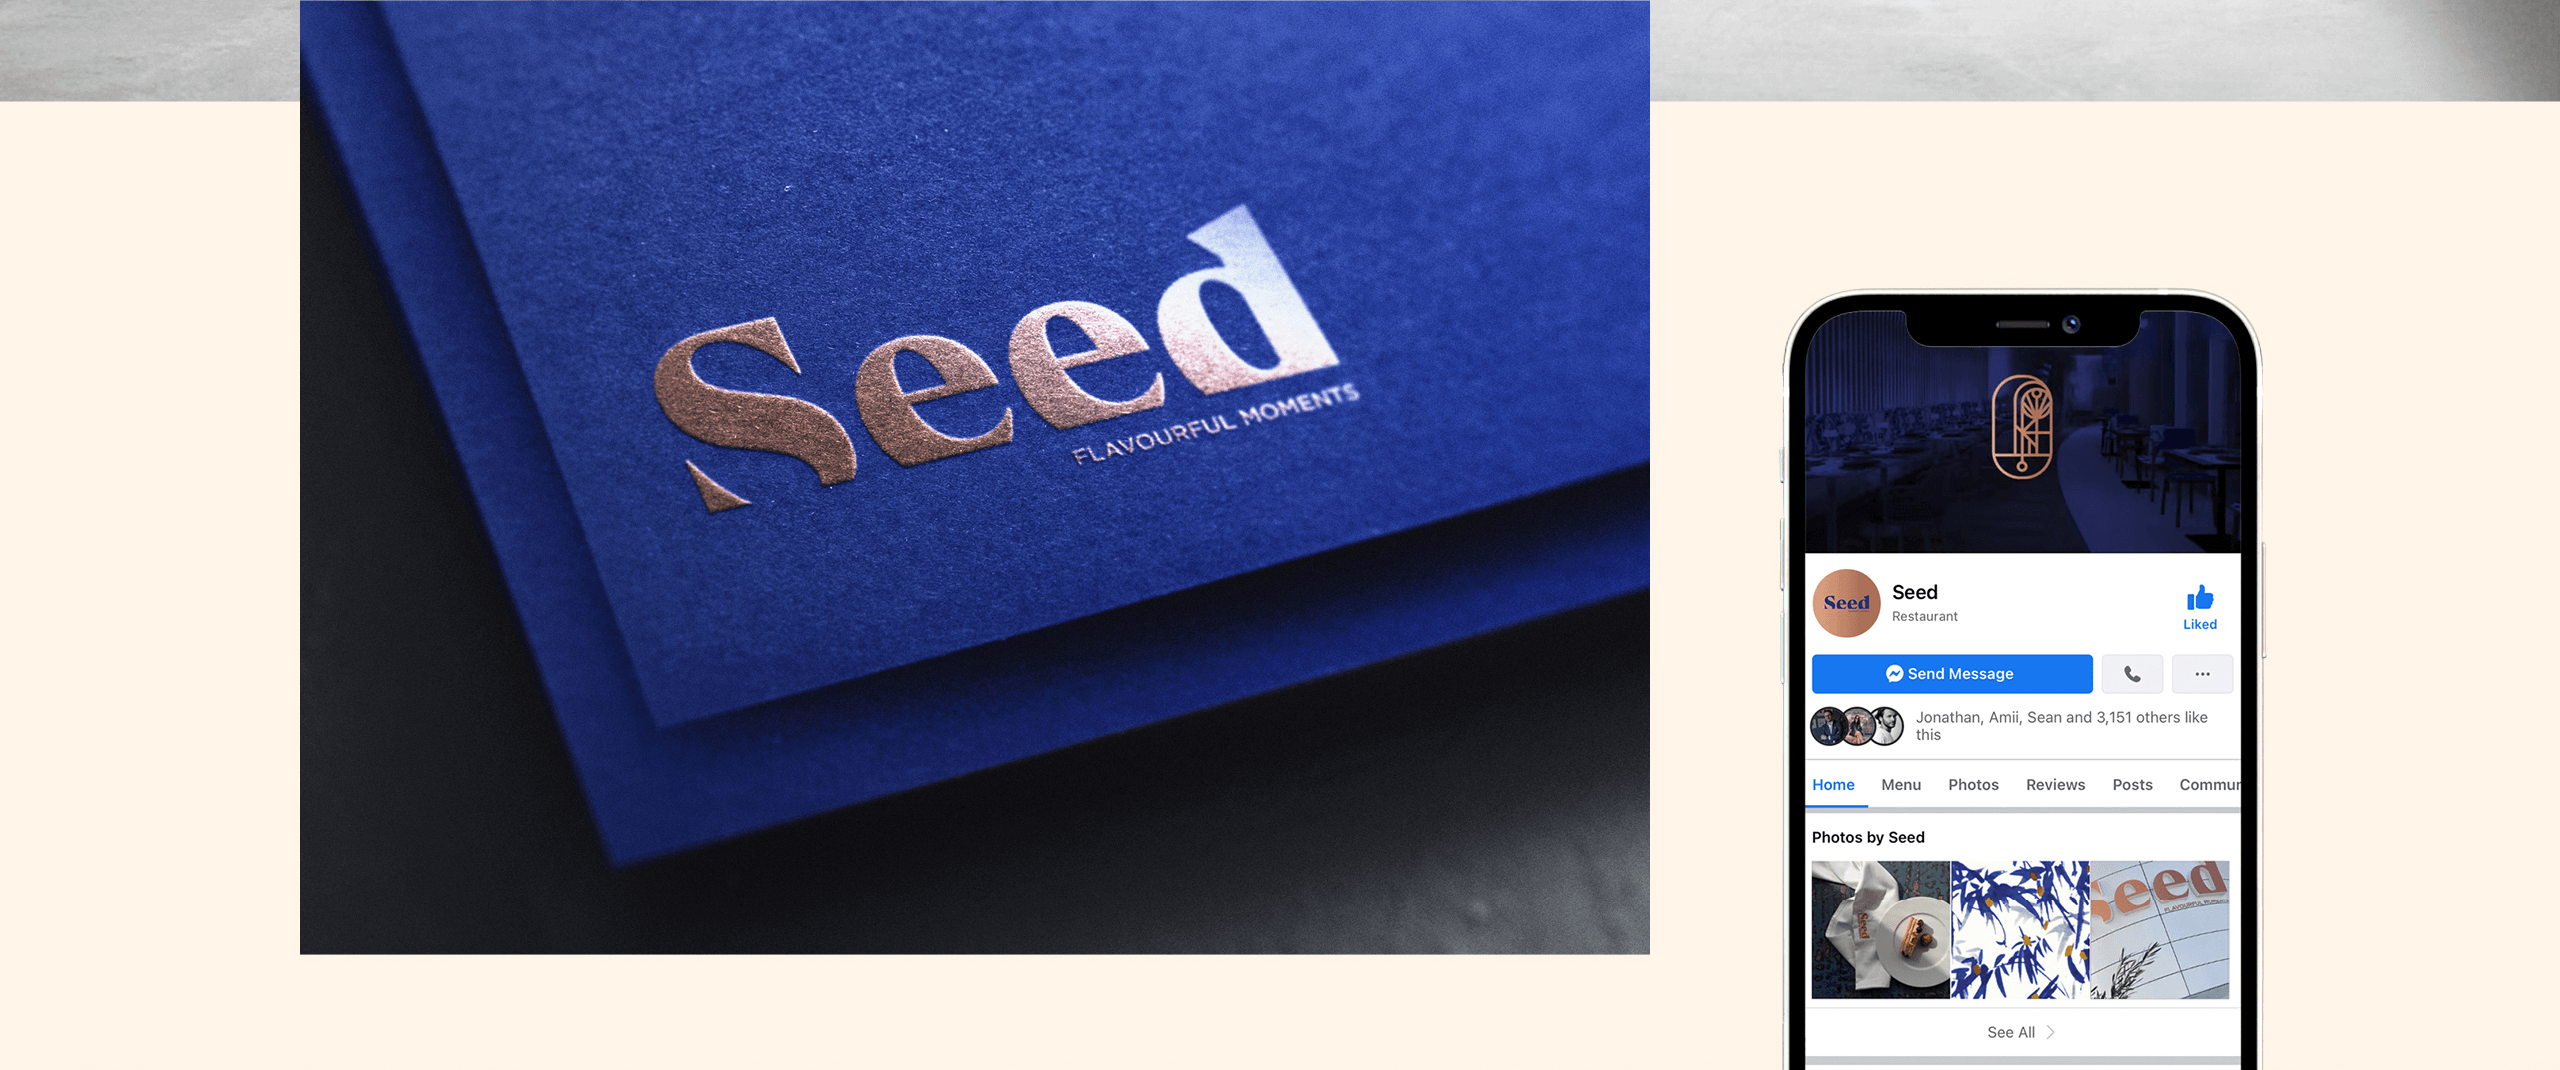 Seed_13 case study